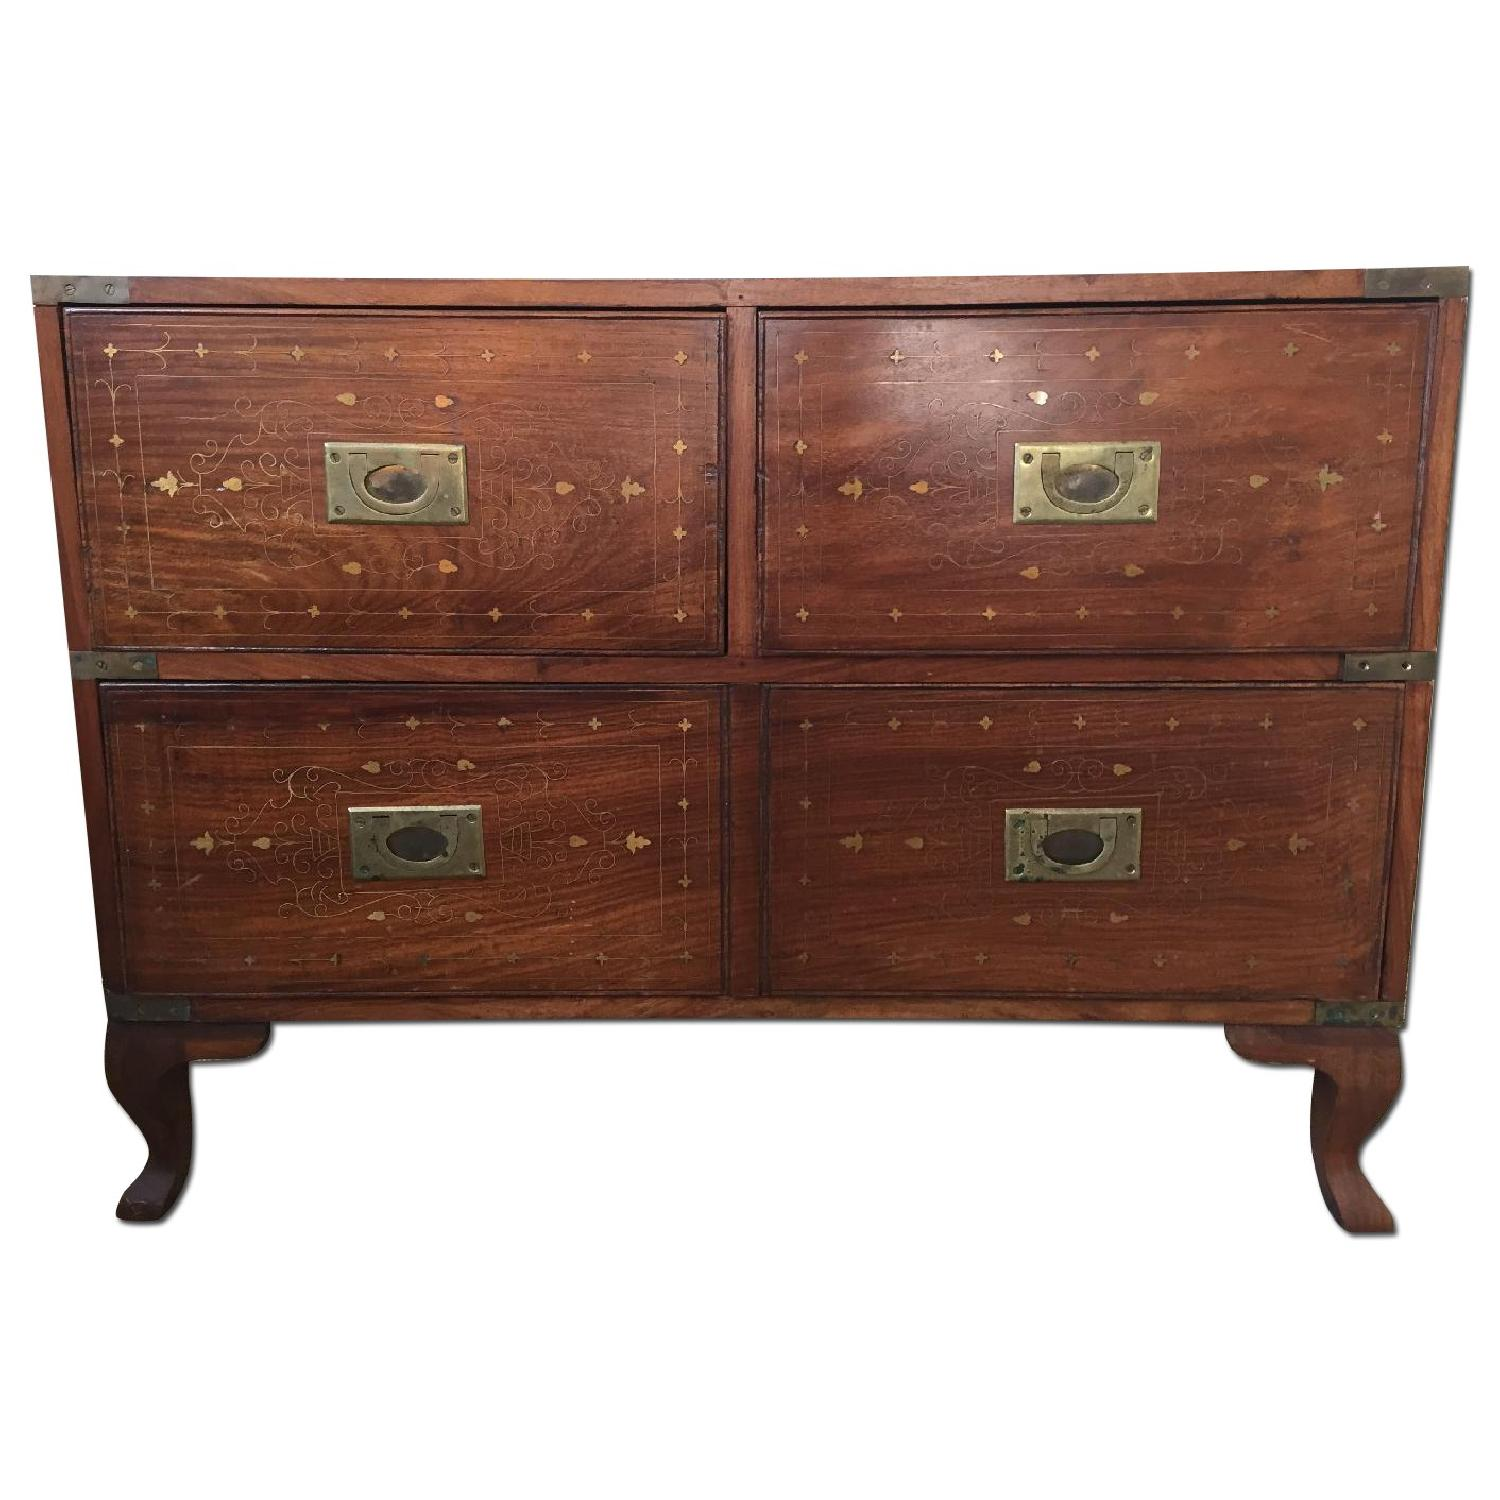 Small Antique Inlaid Chest of Drawers - image-0